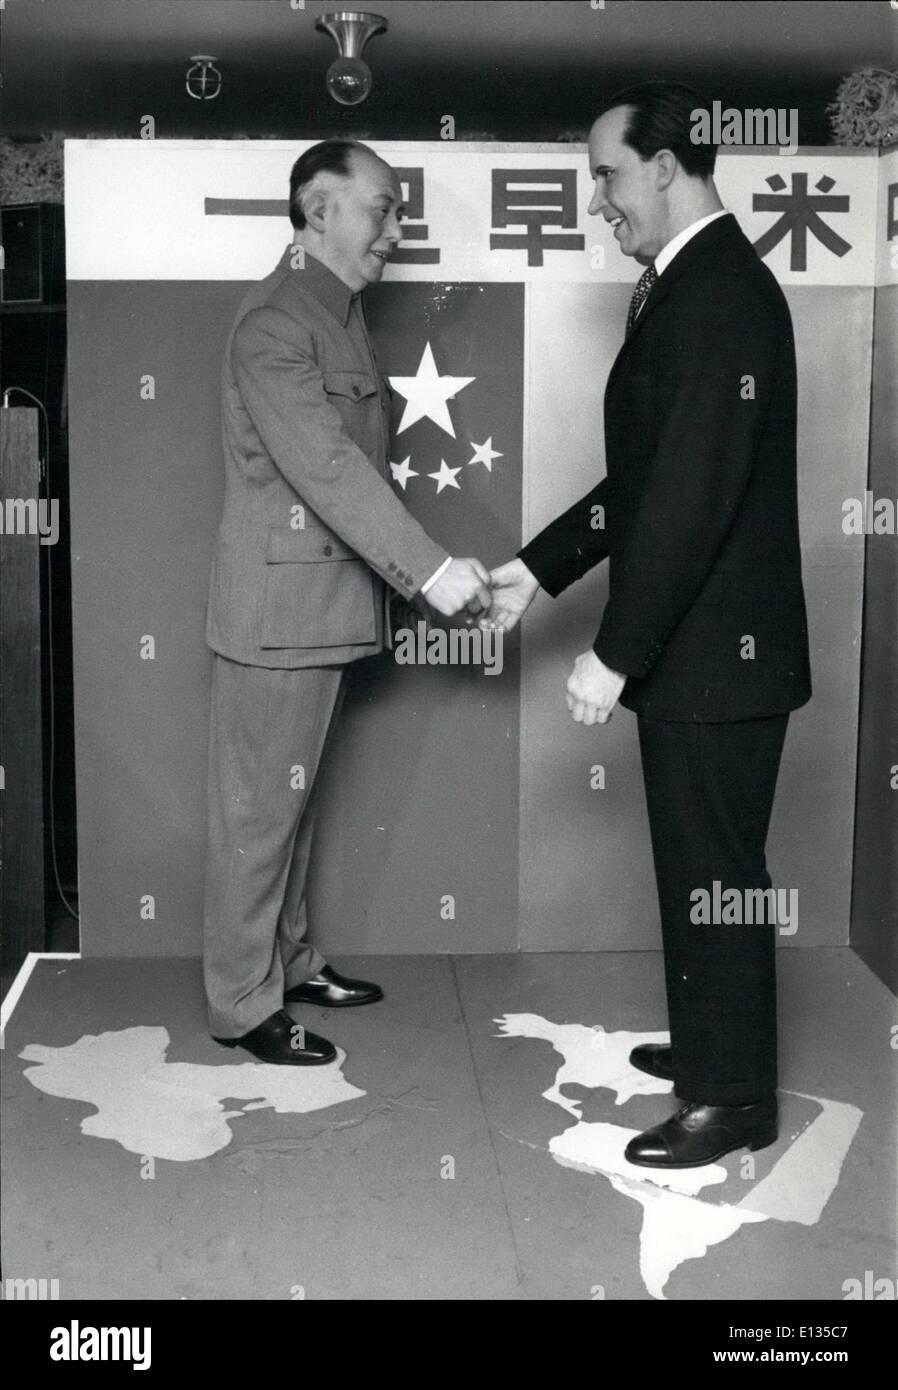 Feb. 26, 2012 - Mao meets Nixon in Tokyo. Tokyoites are able to get a pre-view of the forth coming of Mao Tse-tung and president Nixon in Peking next year by going to a department store in Ikebukuro, a district of Tokyo which is displaying the wax figures of the leaders of China and U.S.A. made in England at a cost of 10 million yen (2,000) - Stock Image